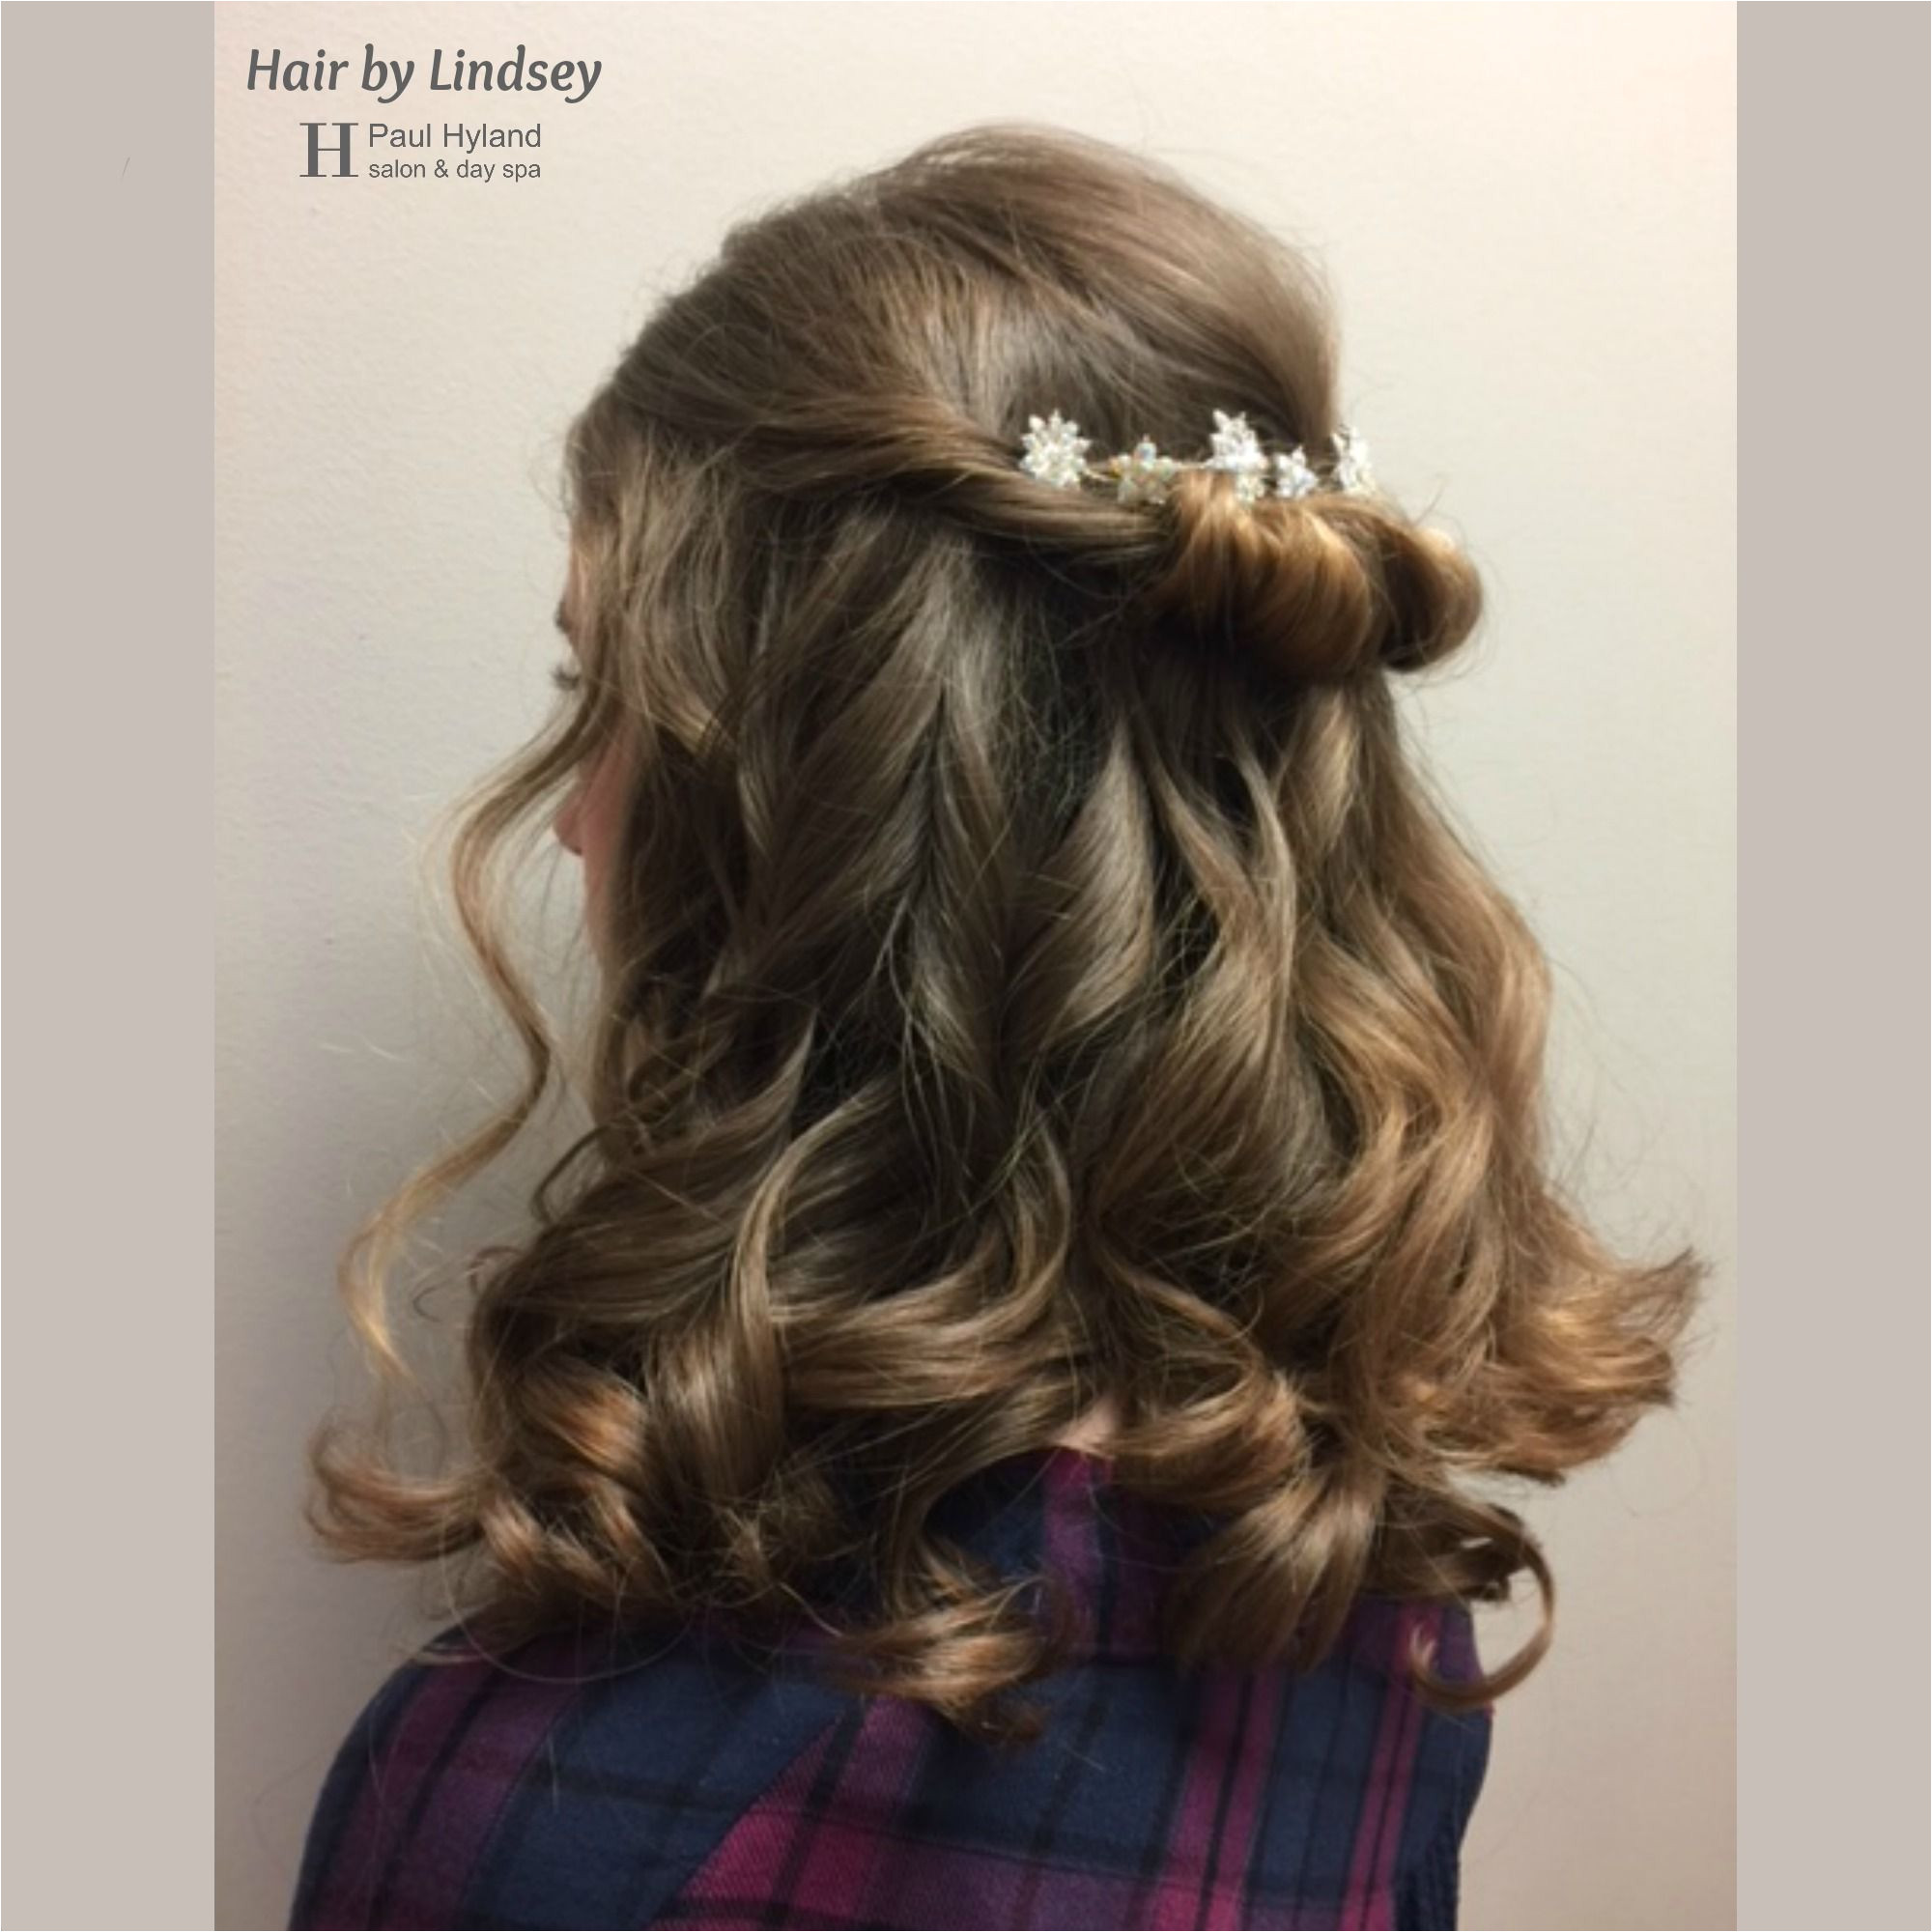 Down Hairstyles for formal events Twists and Curls Pretty Down Style for Wedding Prom or Othe…